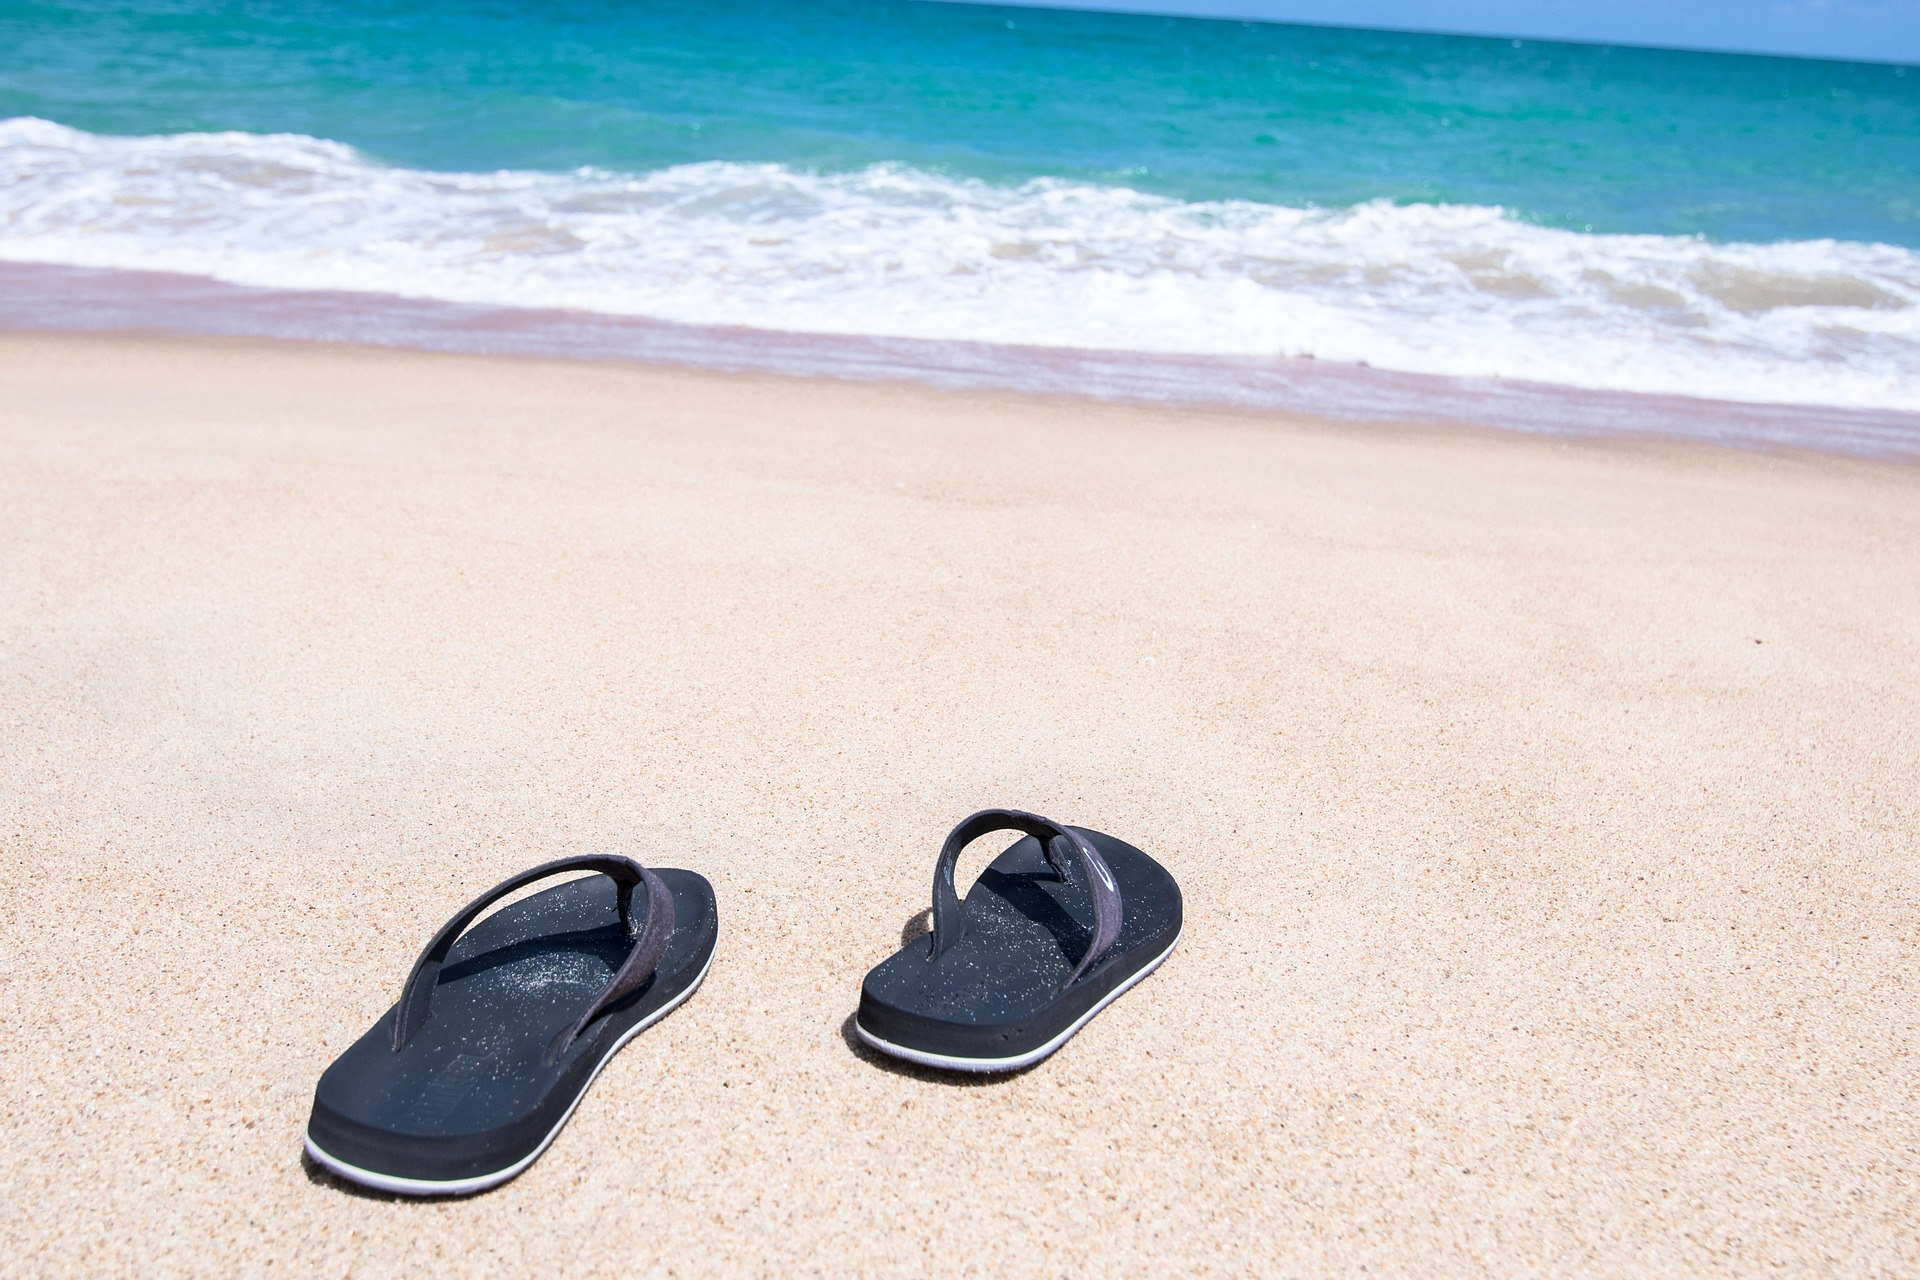 A pair of flip flops on a beach facing towards a body of water. - TAB Bank